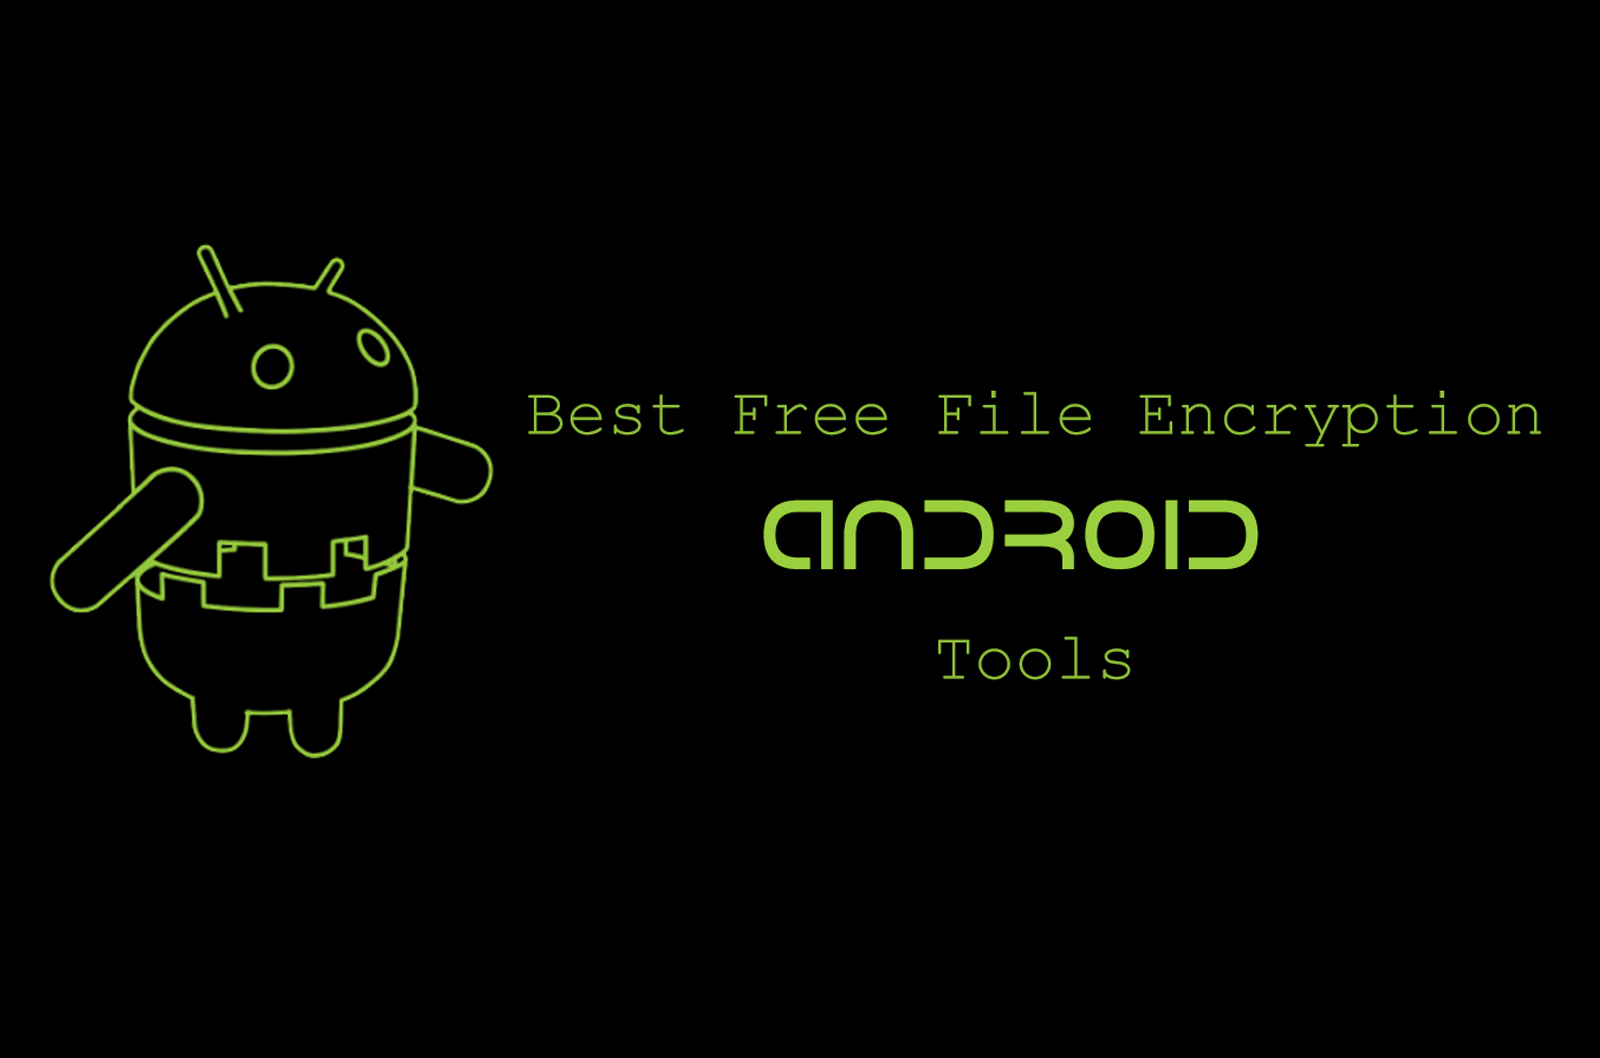 8 Best Free File Encryption Tools For Android - Effect Hacking